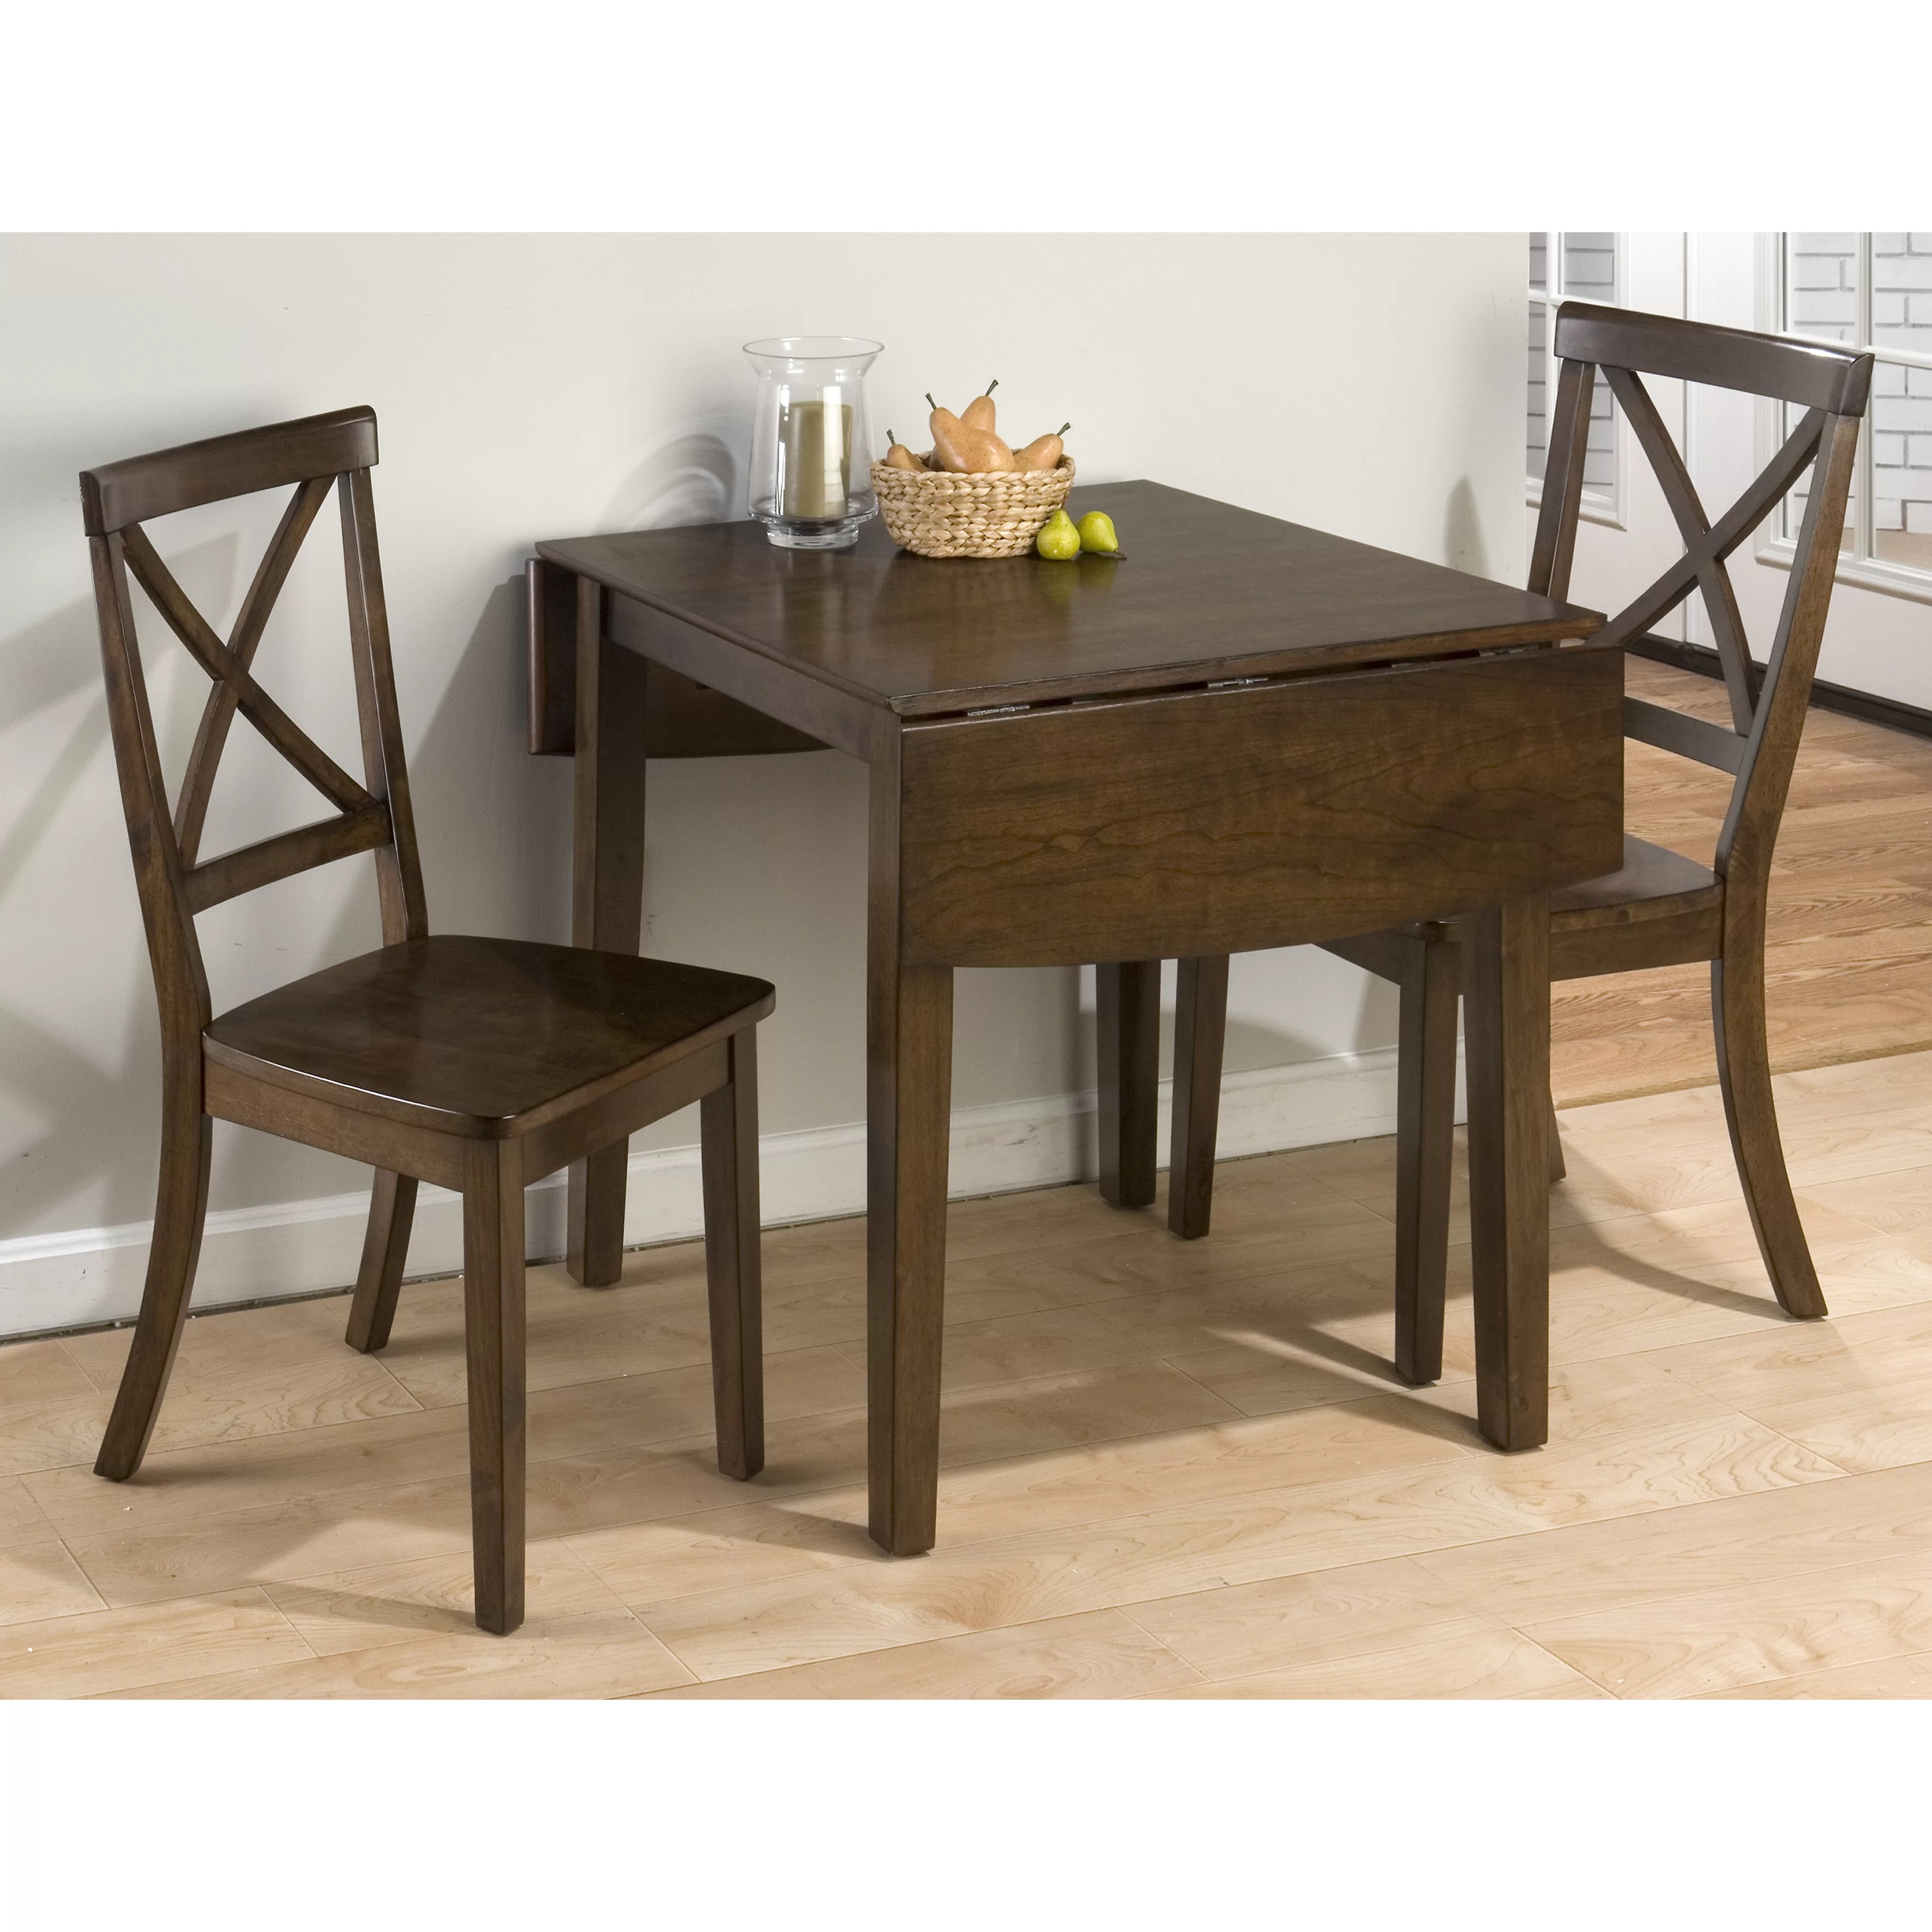 Small Drop Leaf Table With 2 Chairs Jofran Taylor Dining Table And Reviews Wayfair